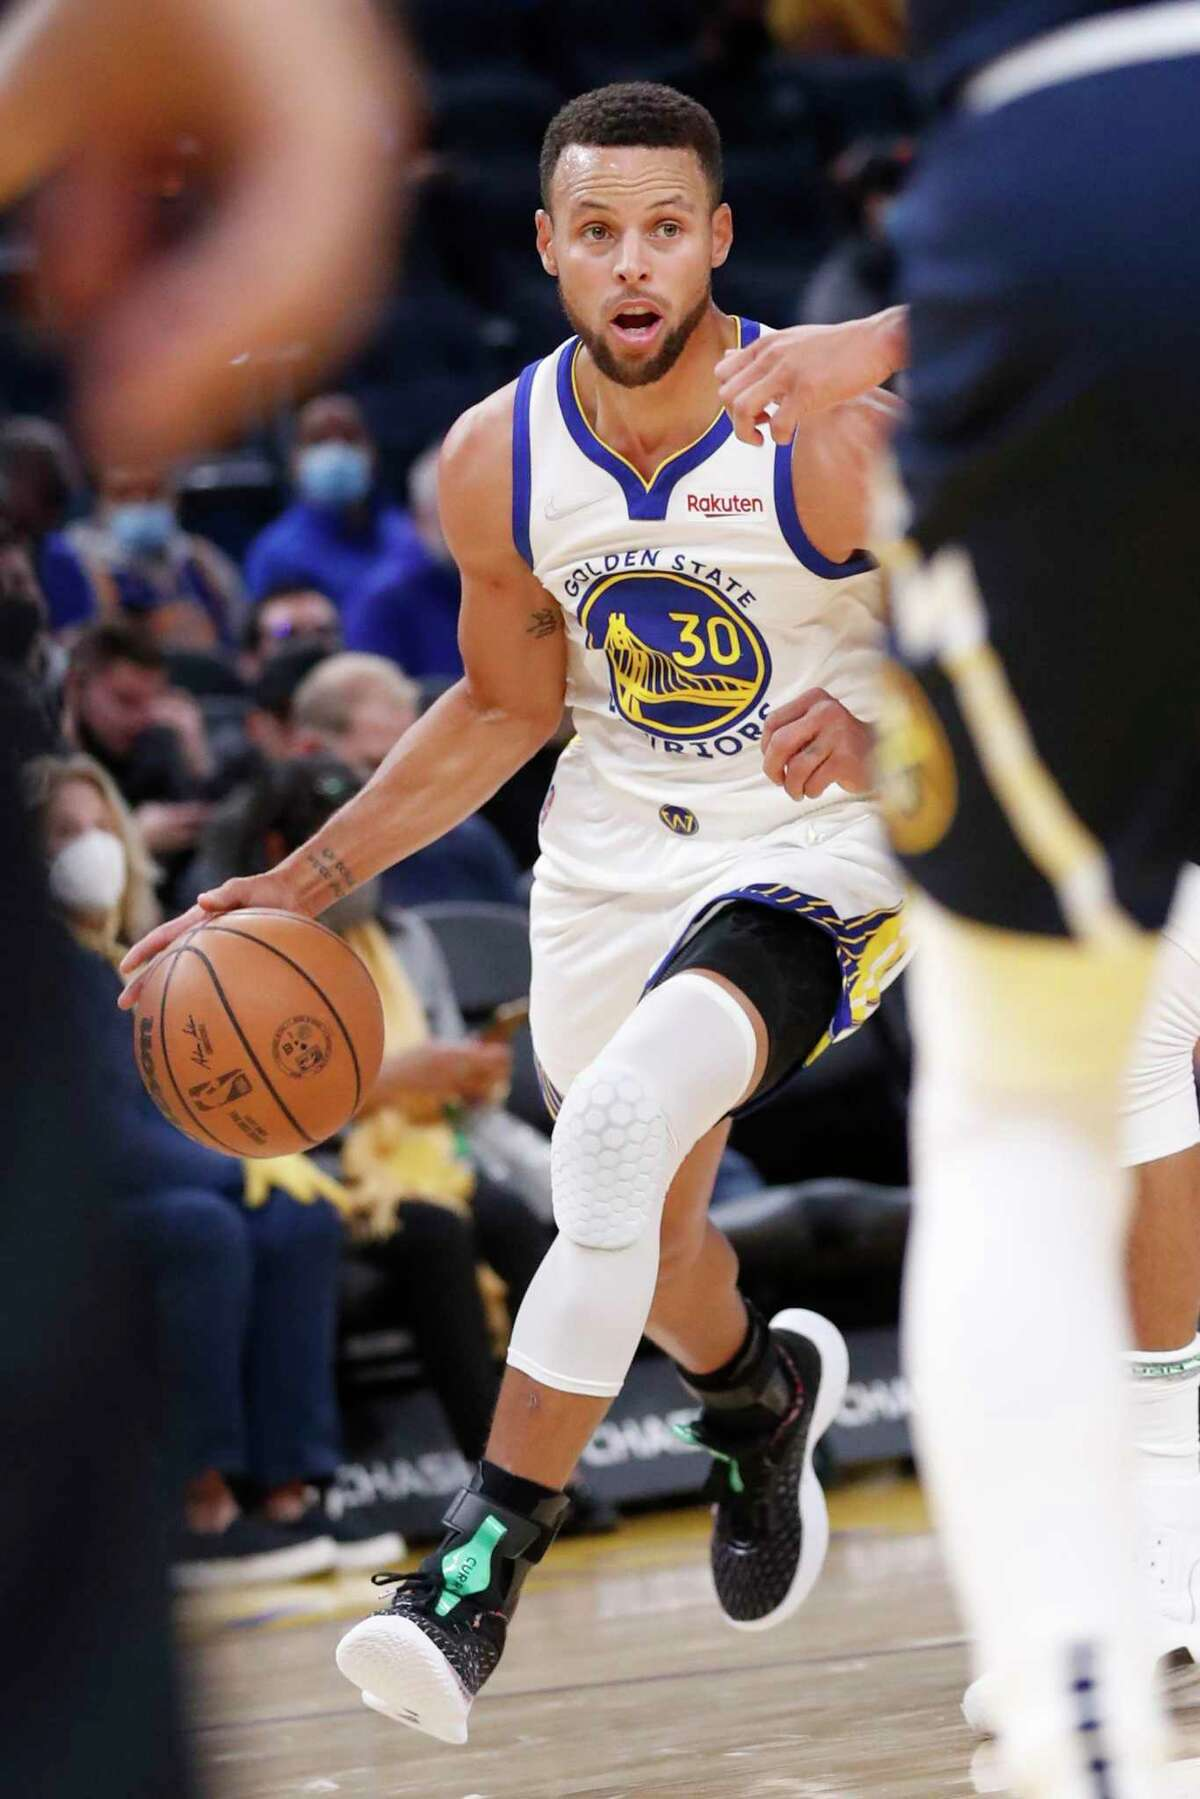 Golden State Warriors' Stephen Curry drives to the basket against Denver Nuggets in 1st quarter during NBA preseason game at Chase Center in San Francisco, Calif., on Wednesday, October 6, 2021.